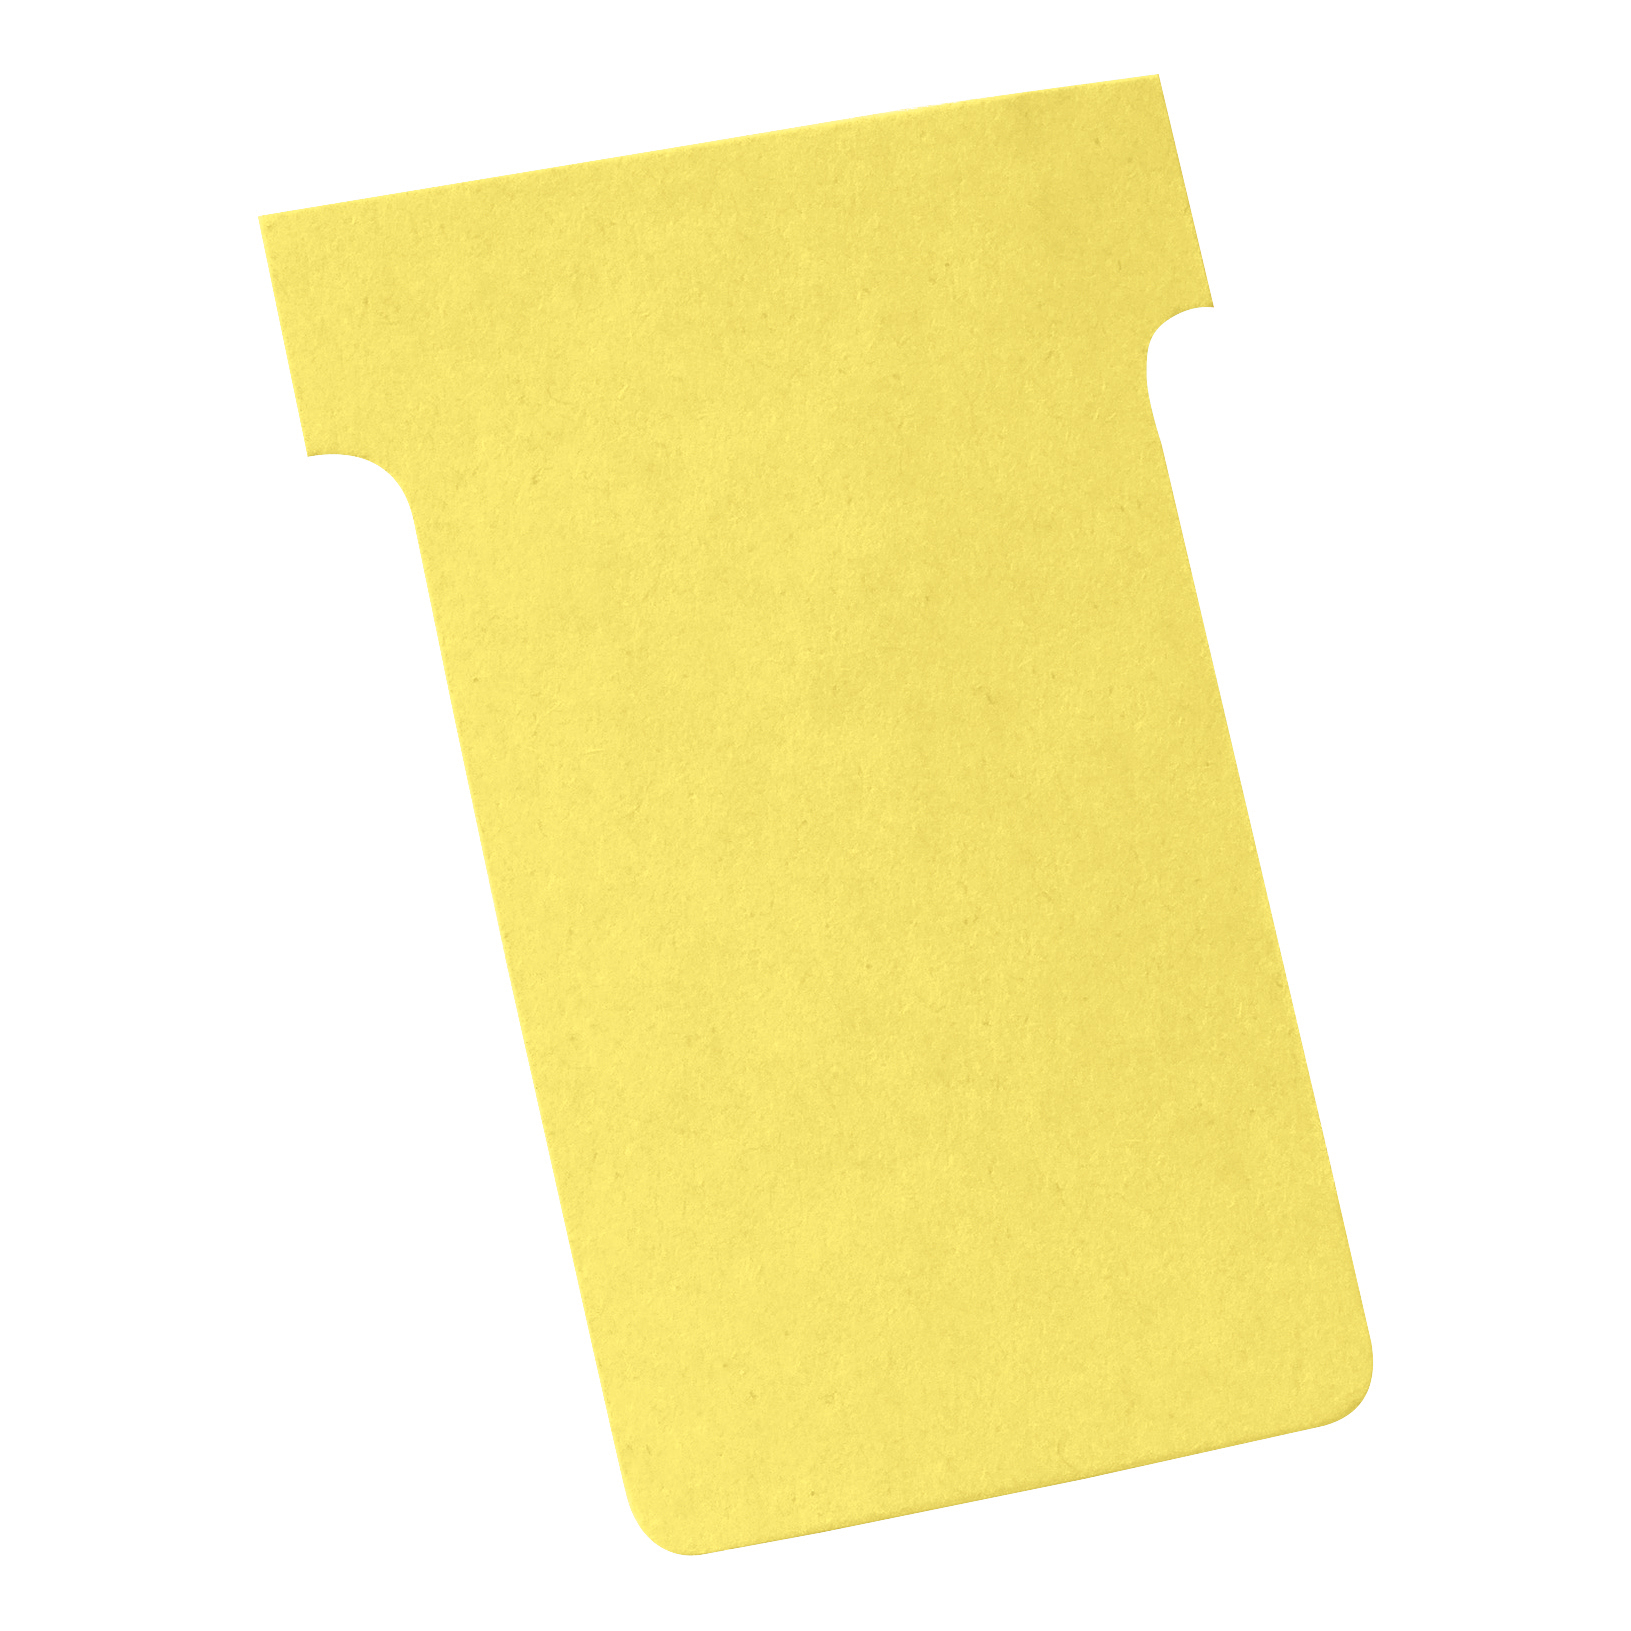 Nobo T-Cards 160gsm Tab Top 15mm W61x Bottom W48.5x Full H86mm Size 2 Yellow Ref 2002004 Pack 100